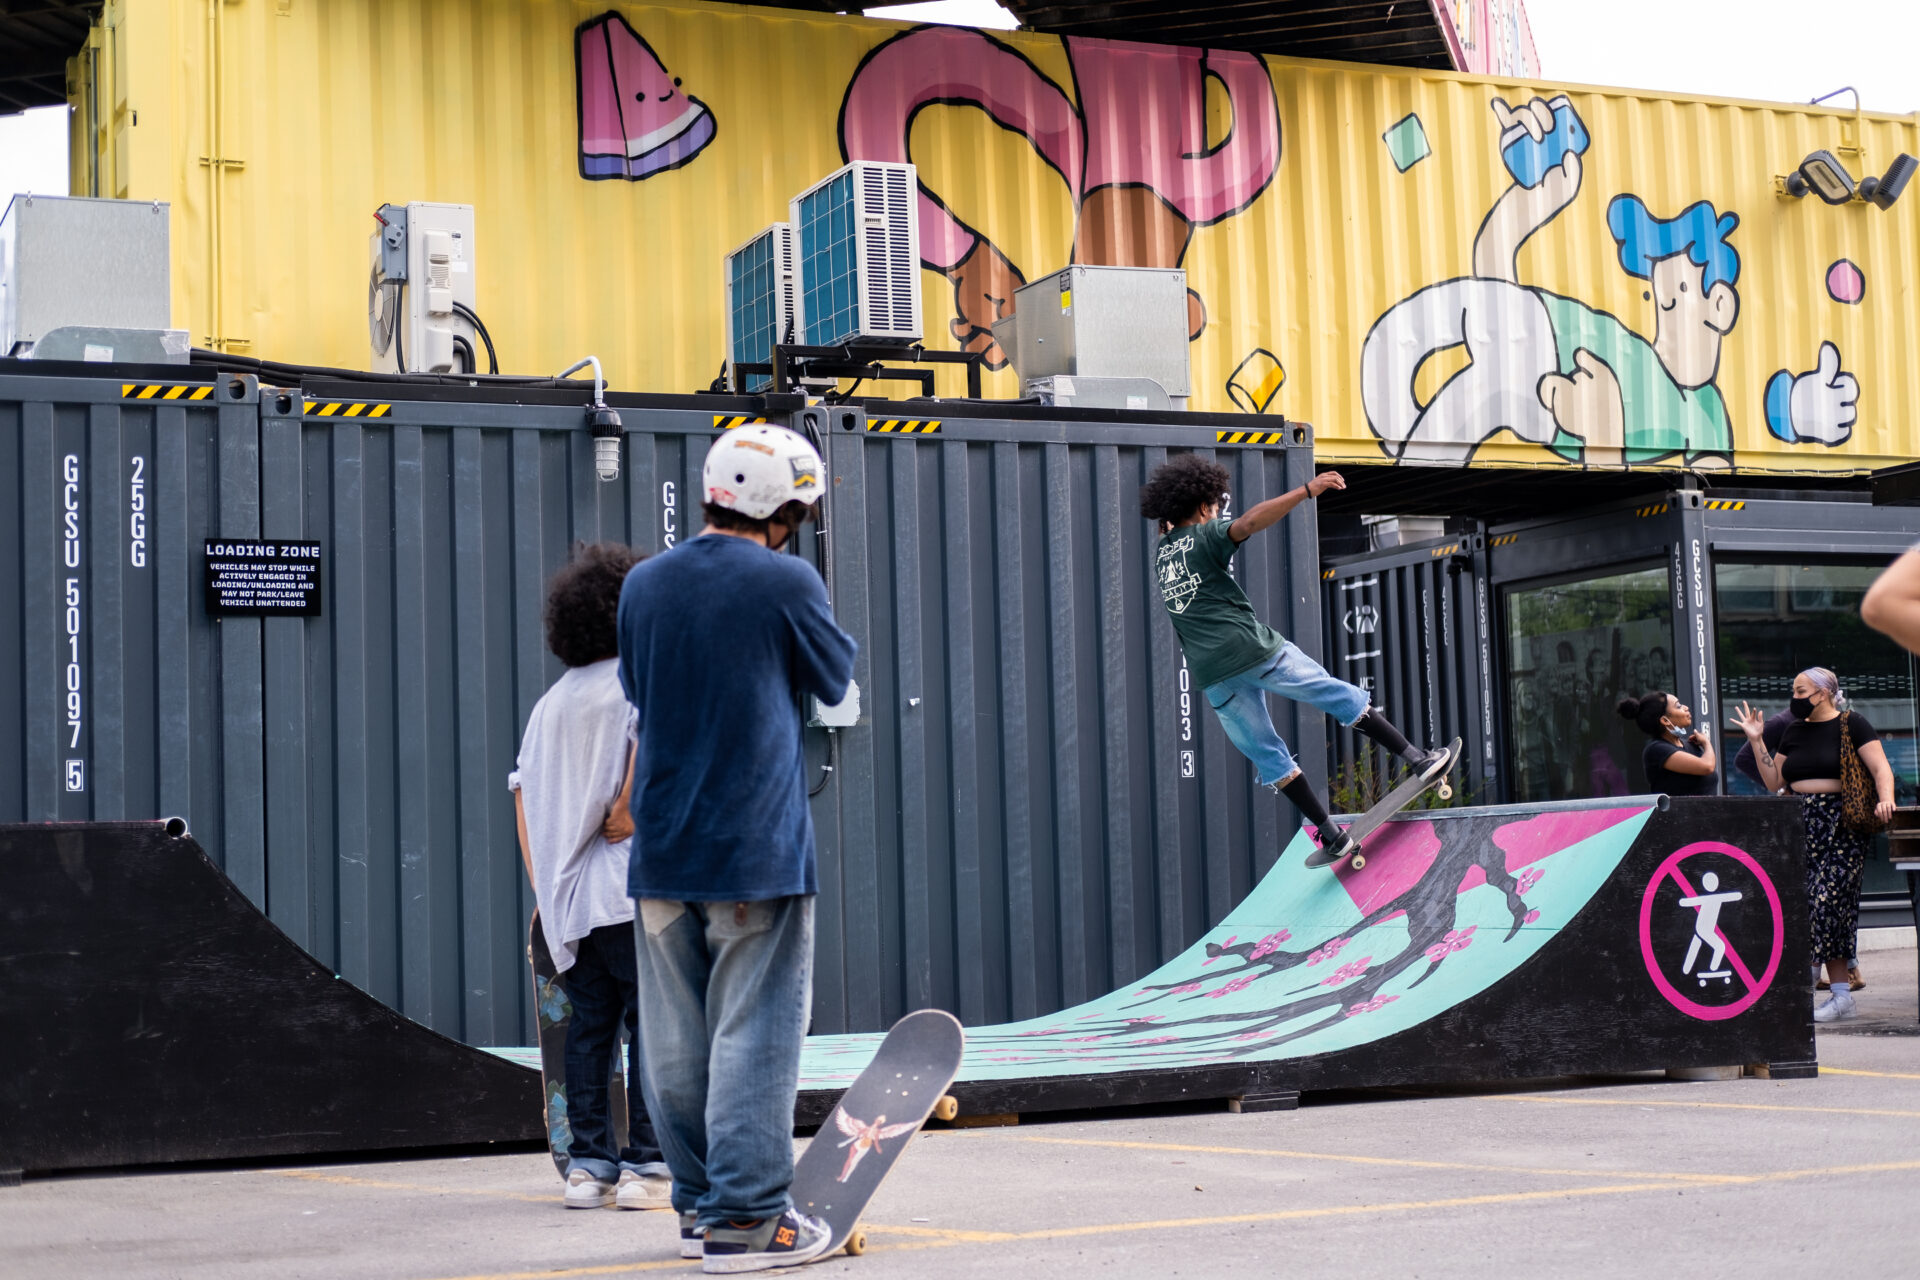 two skateboarders are looking at skateboarder on the ramp